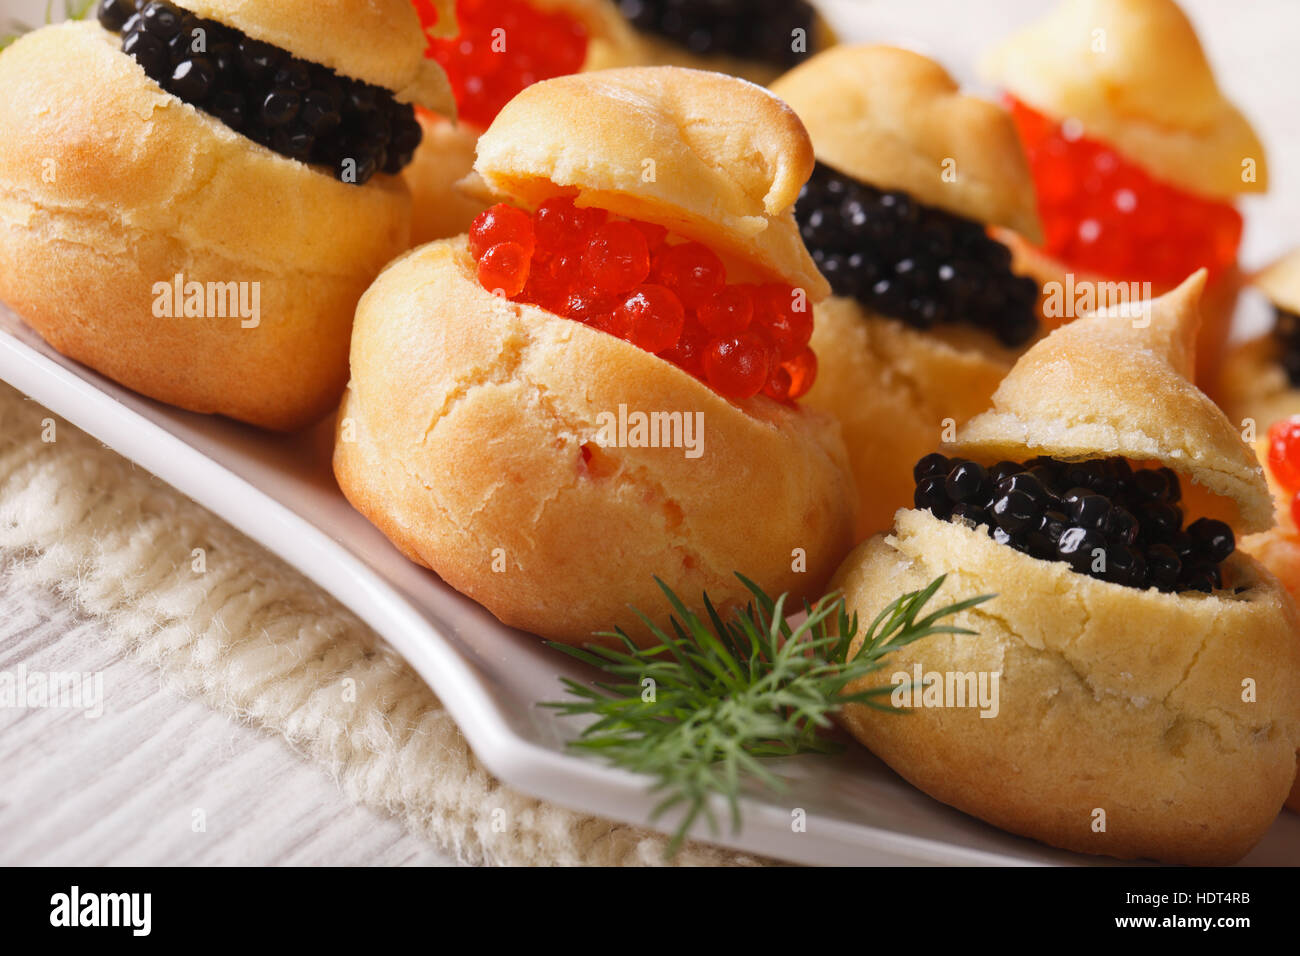 Fresh profiteroles stuffed with red and black caviar on a plate close-up. Horizontal - Stock Image